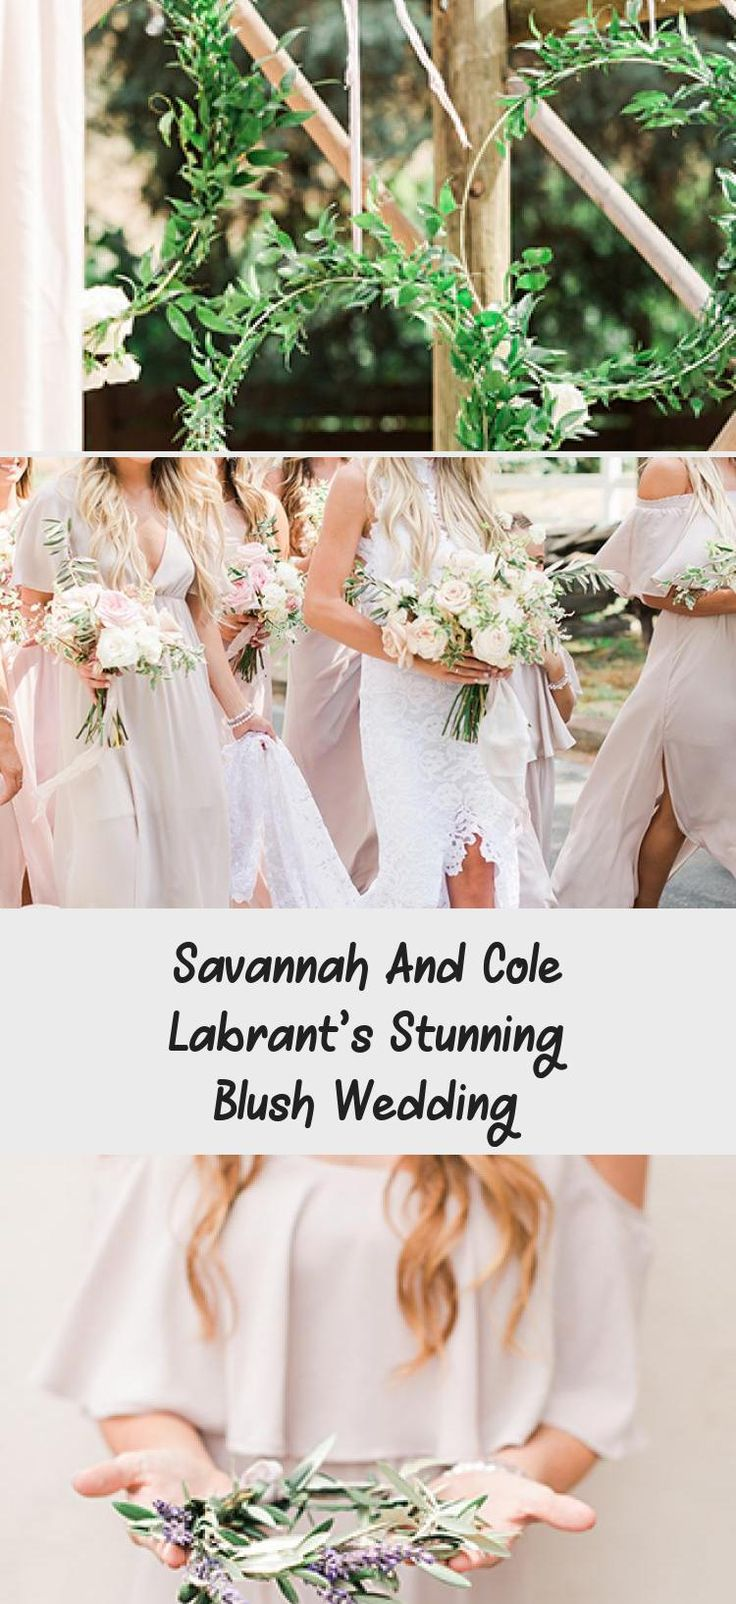 Savannah and Cole LaBrant's Stunning Blush Wedding - Inspired By This #SageBridesmaidDresses #PlumBridesmaidDresses #BridesmaidDressesCoral #TaupeBridesmaidDresses #MixAndMatchBridesmaidDresses